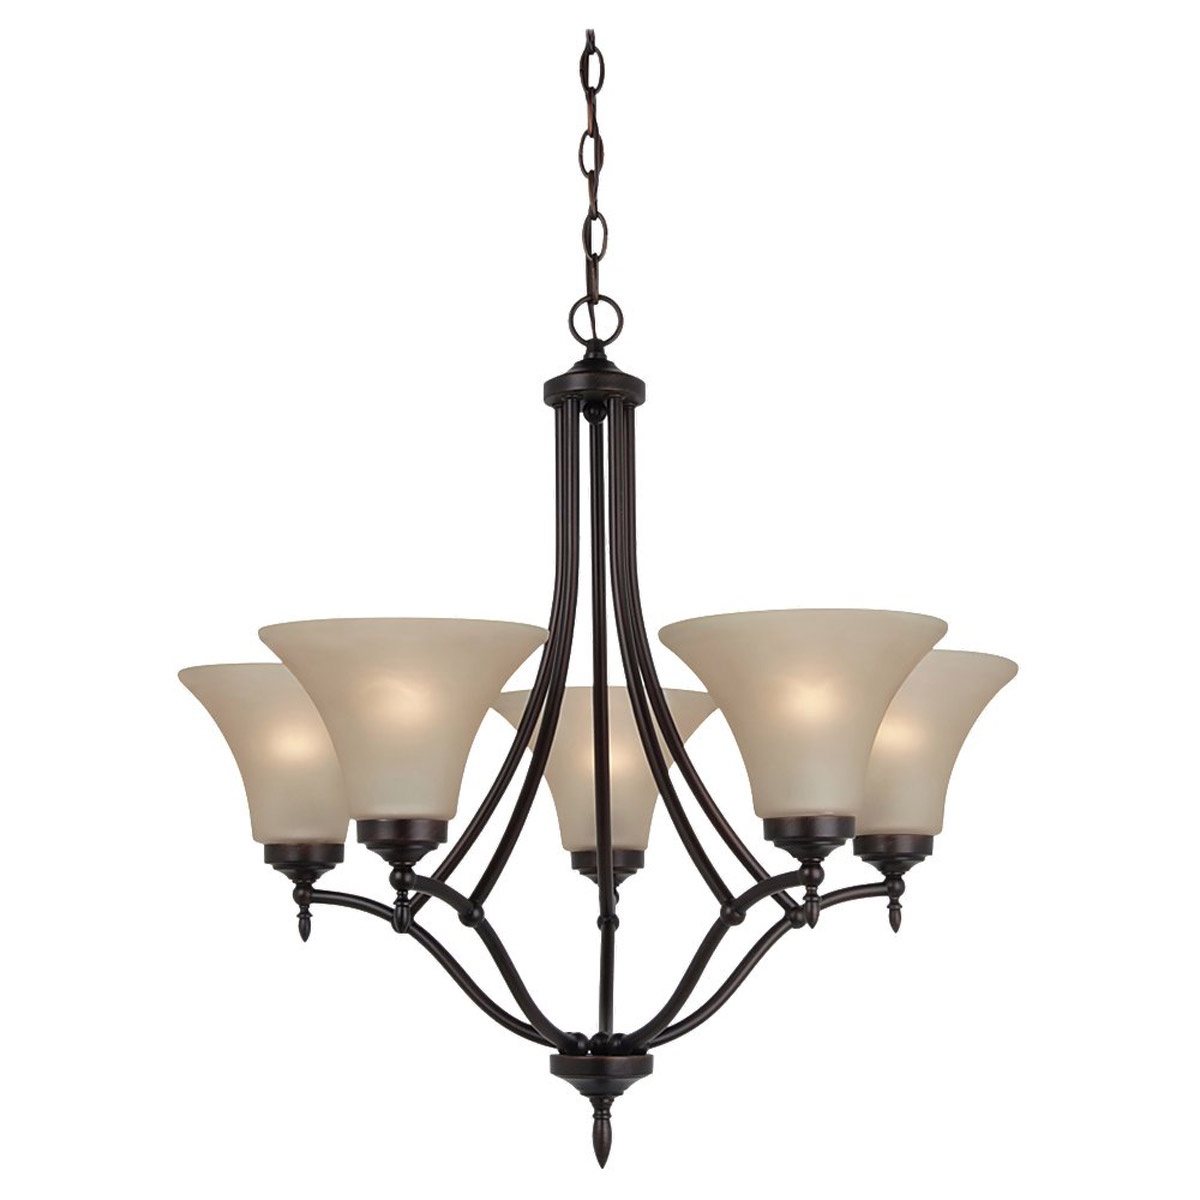 Sea Gull 31181BLE-710 Montreal 5 Light 26 inch Burnt Sienna Chandelier Ceiling Light in Cafe Tint Glass, Fluorescent photo